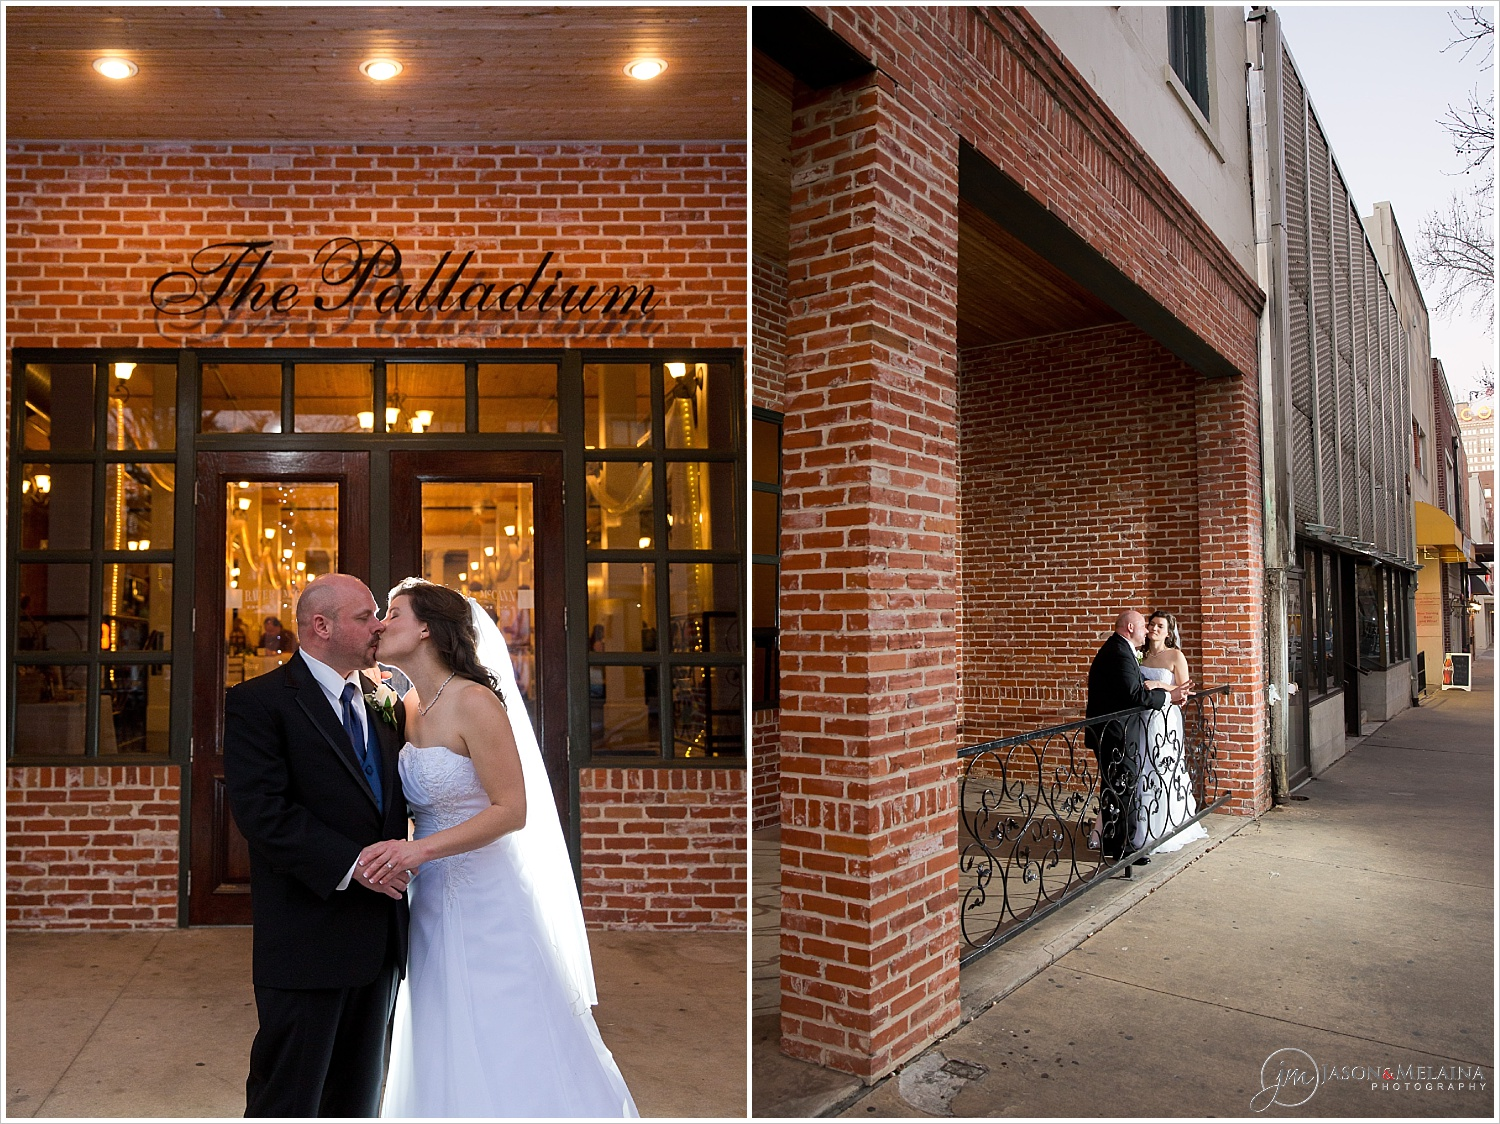 Bride and groom kiss outside The Palladium in Waco, Texas